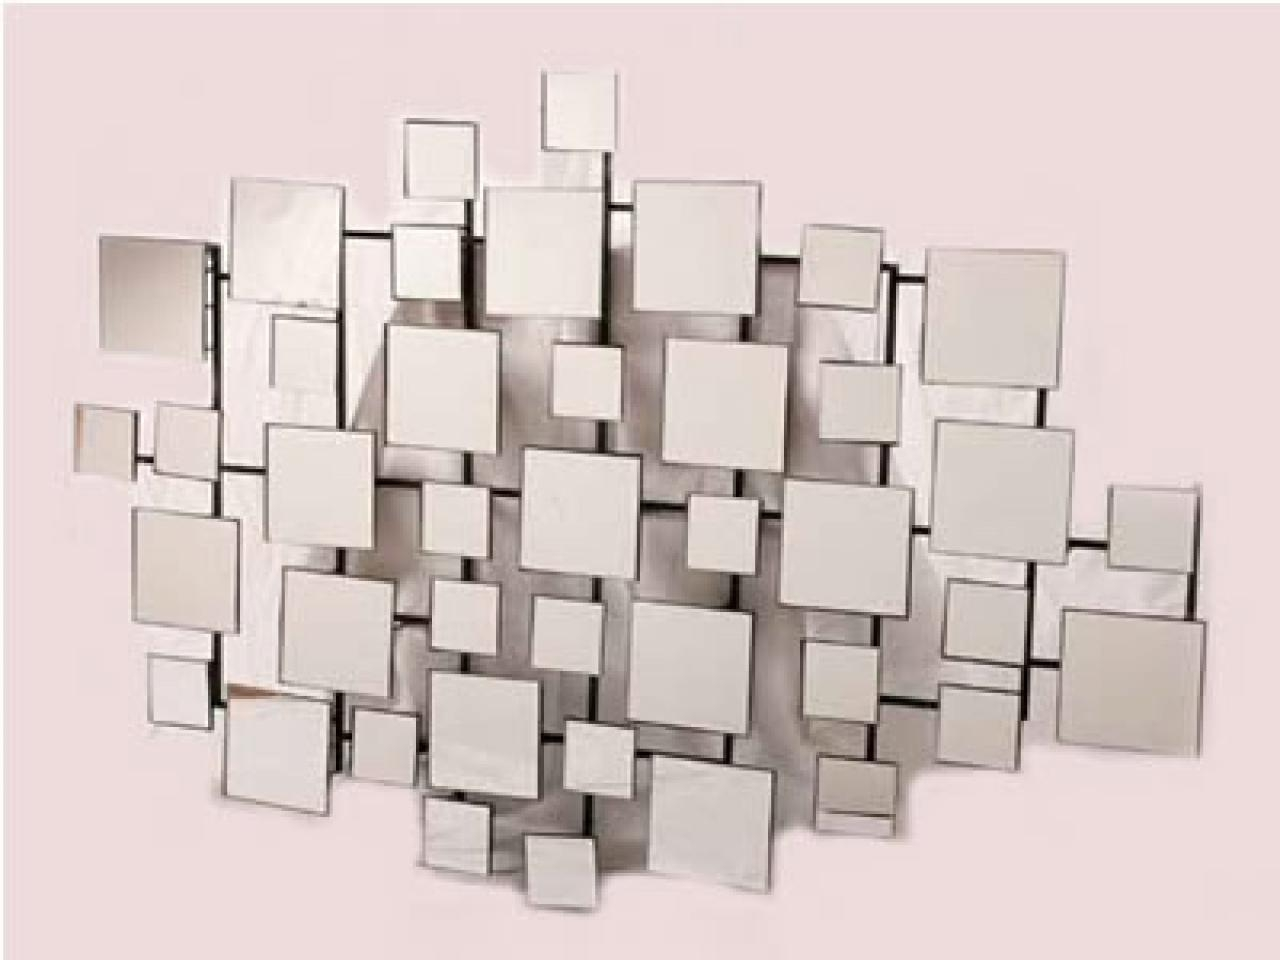 Wall Art Designs: Mirrored Wall Art Geometric Mirror Wall Art With Regard To Modern Mirrored Wall Art (View 2 of 20)